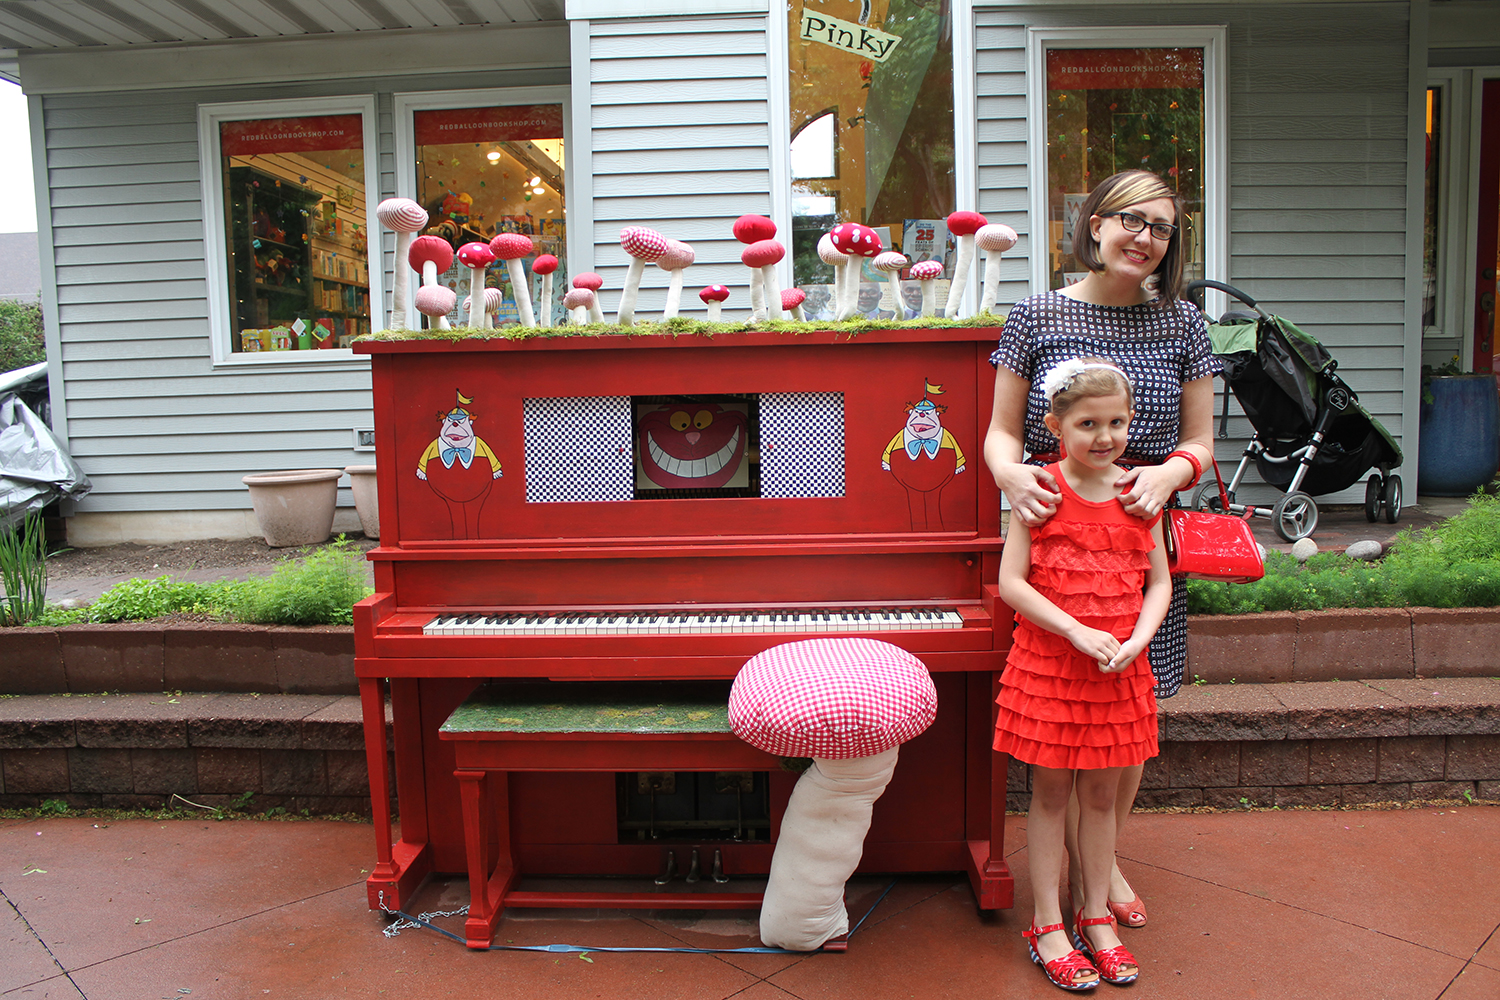 where to donate a piano